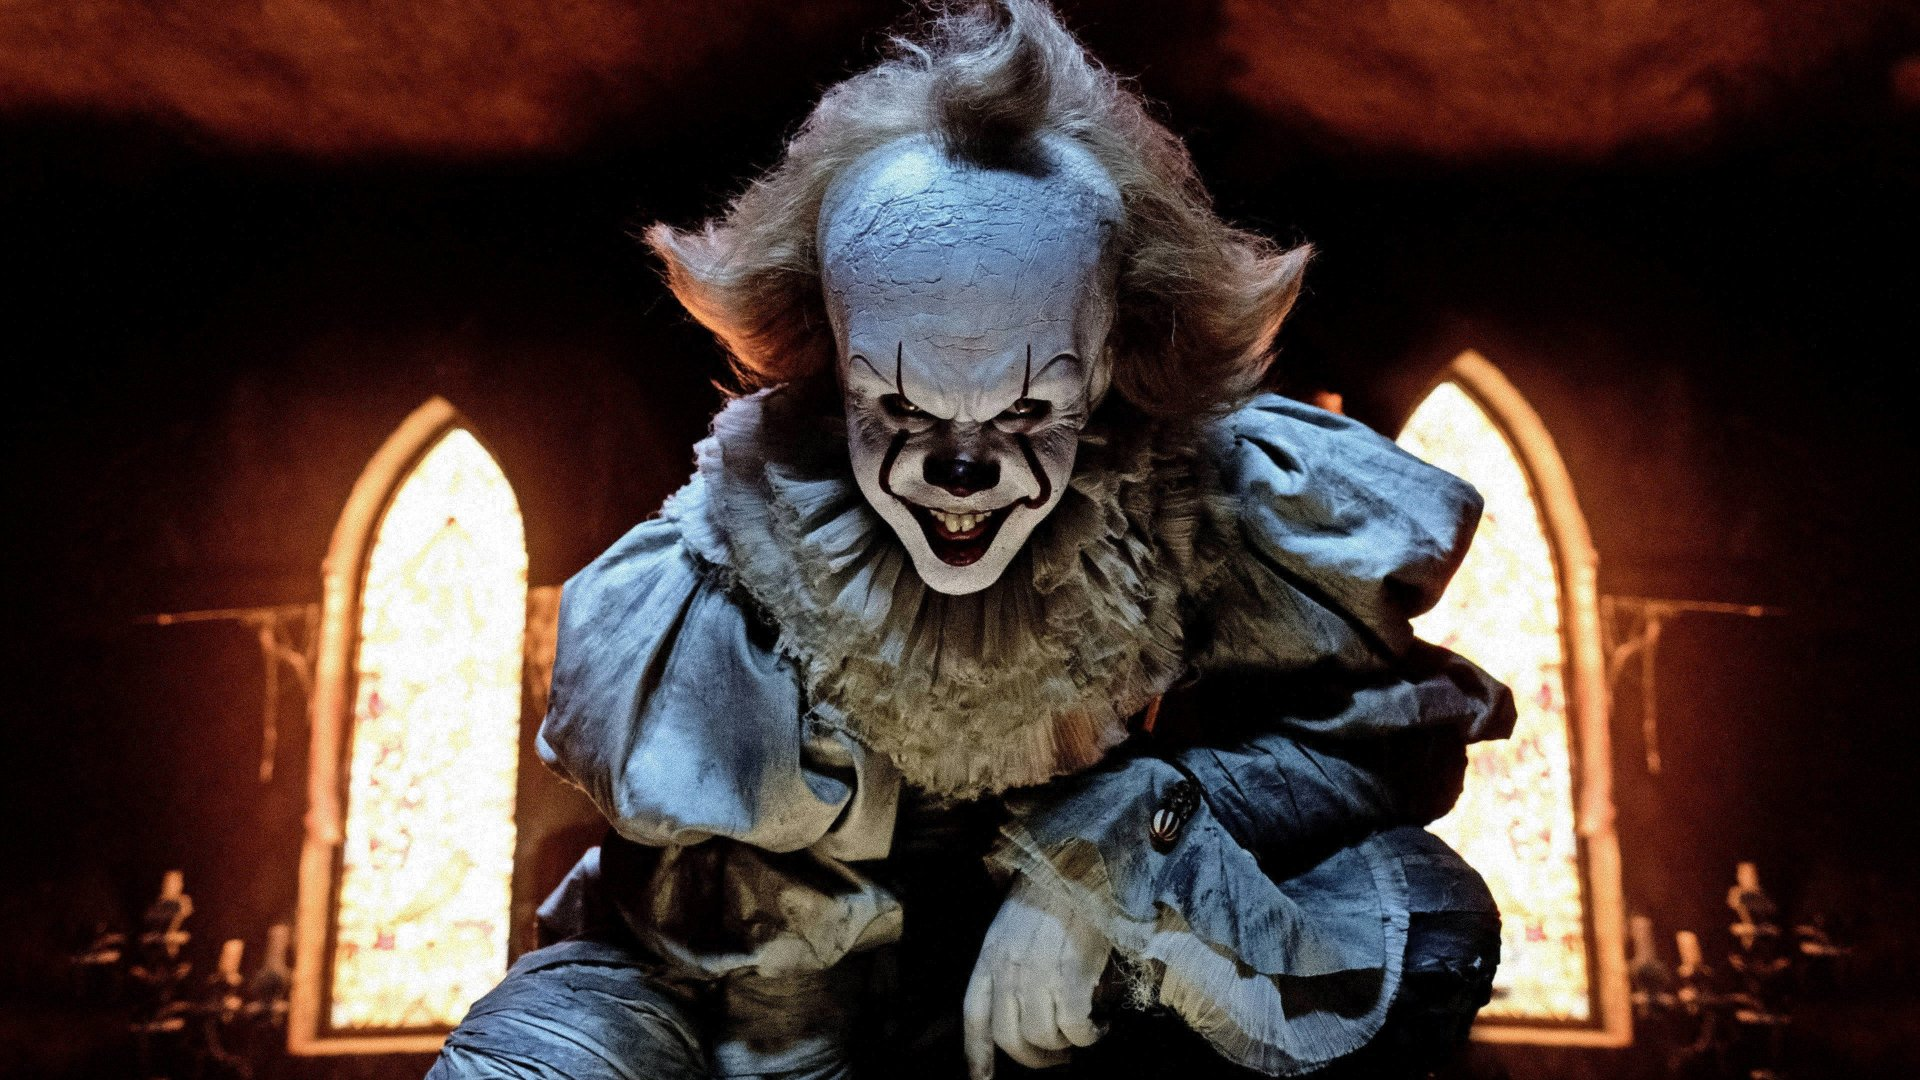 Movie - It (2017)  Pennywise (It) Clown Scary Wallpaper